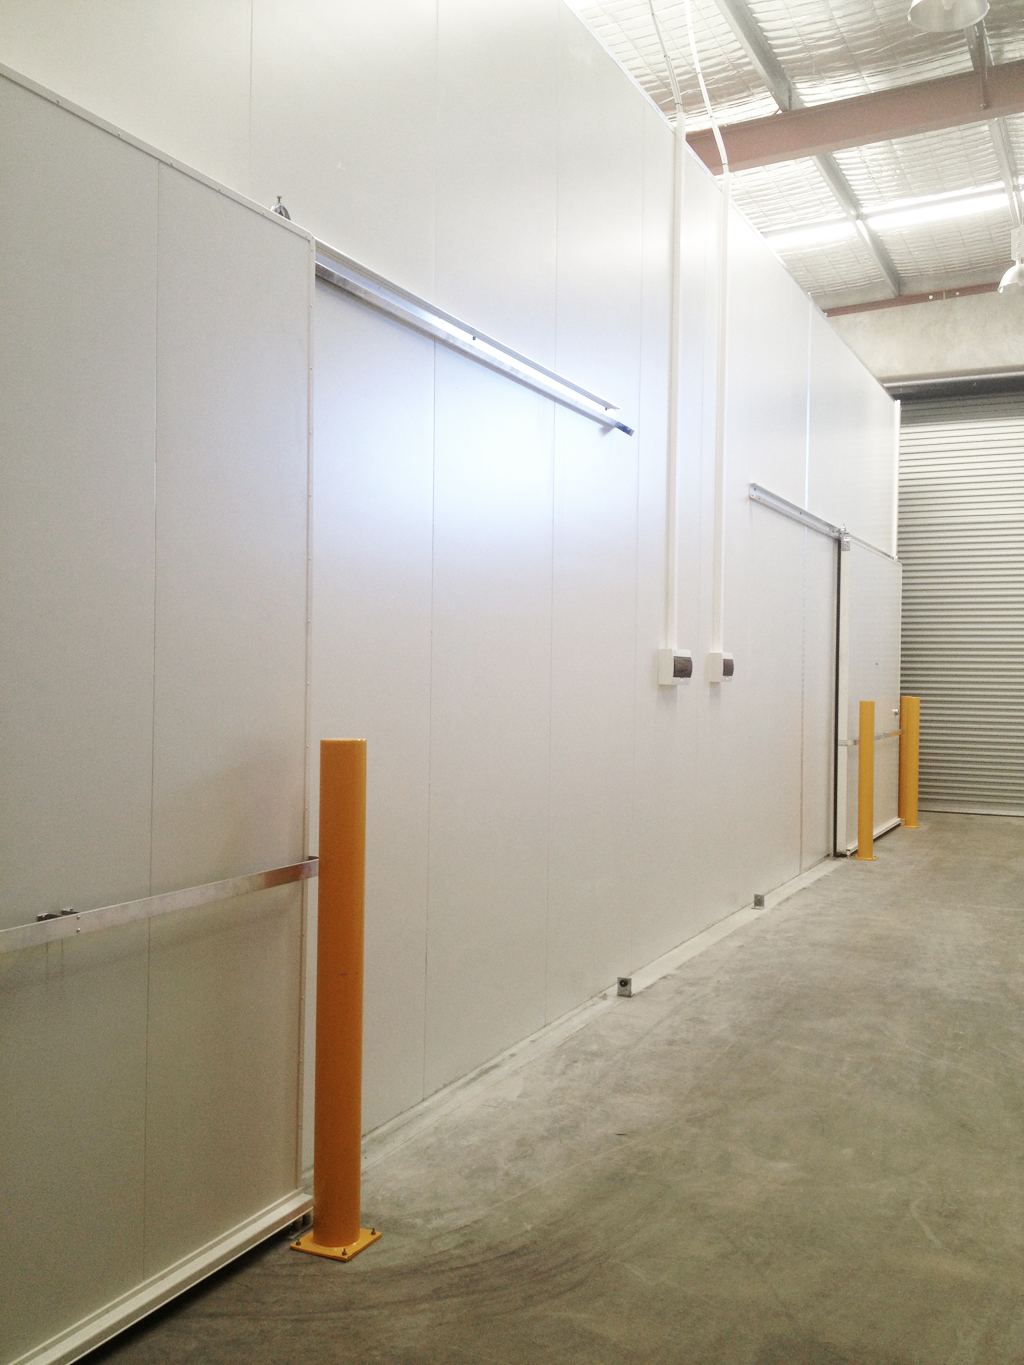 Canning_Vale_Cold_Storage_Freezer_Coolroom.jpg